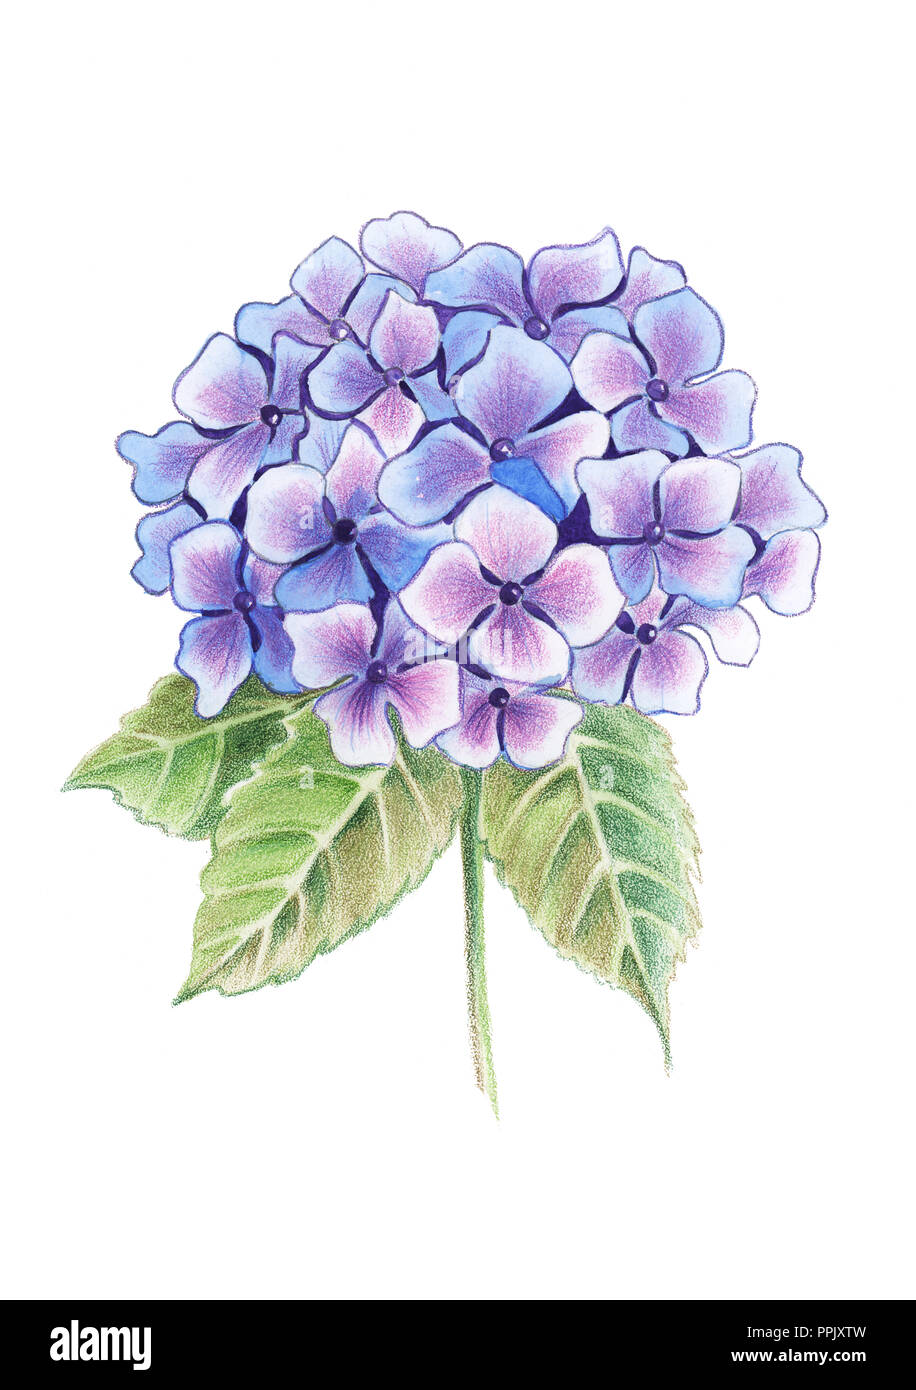 Illustration of drawing colored pencils hydrangea flowers in